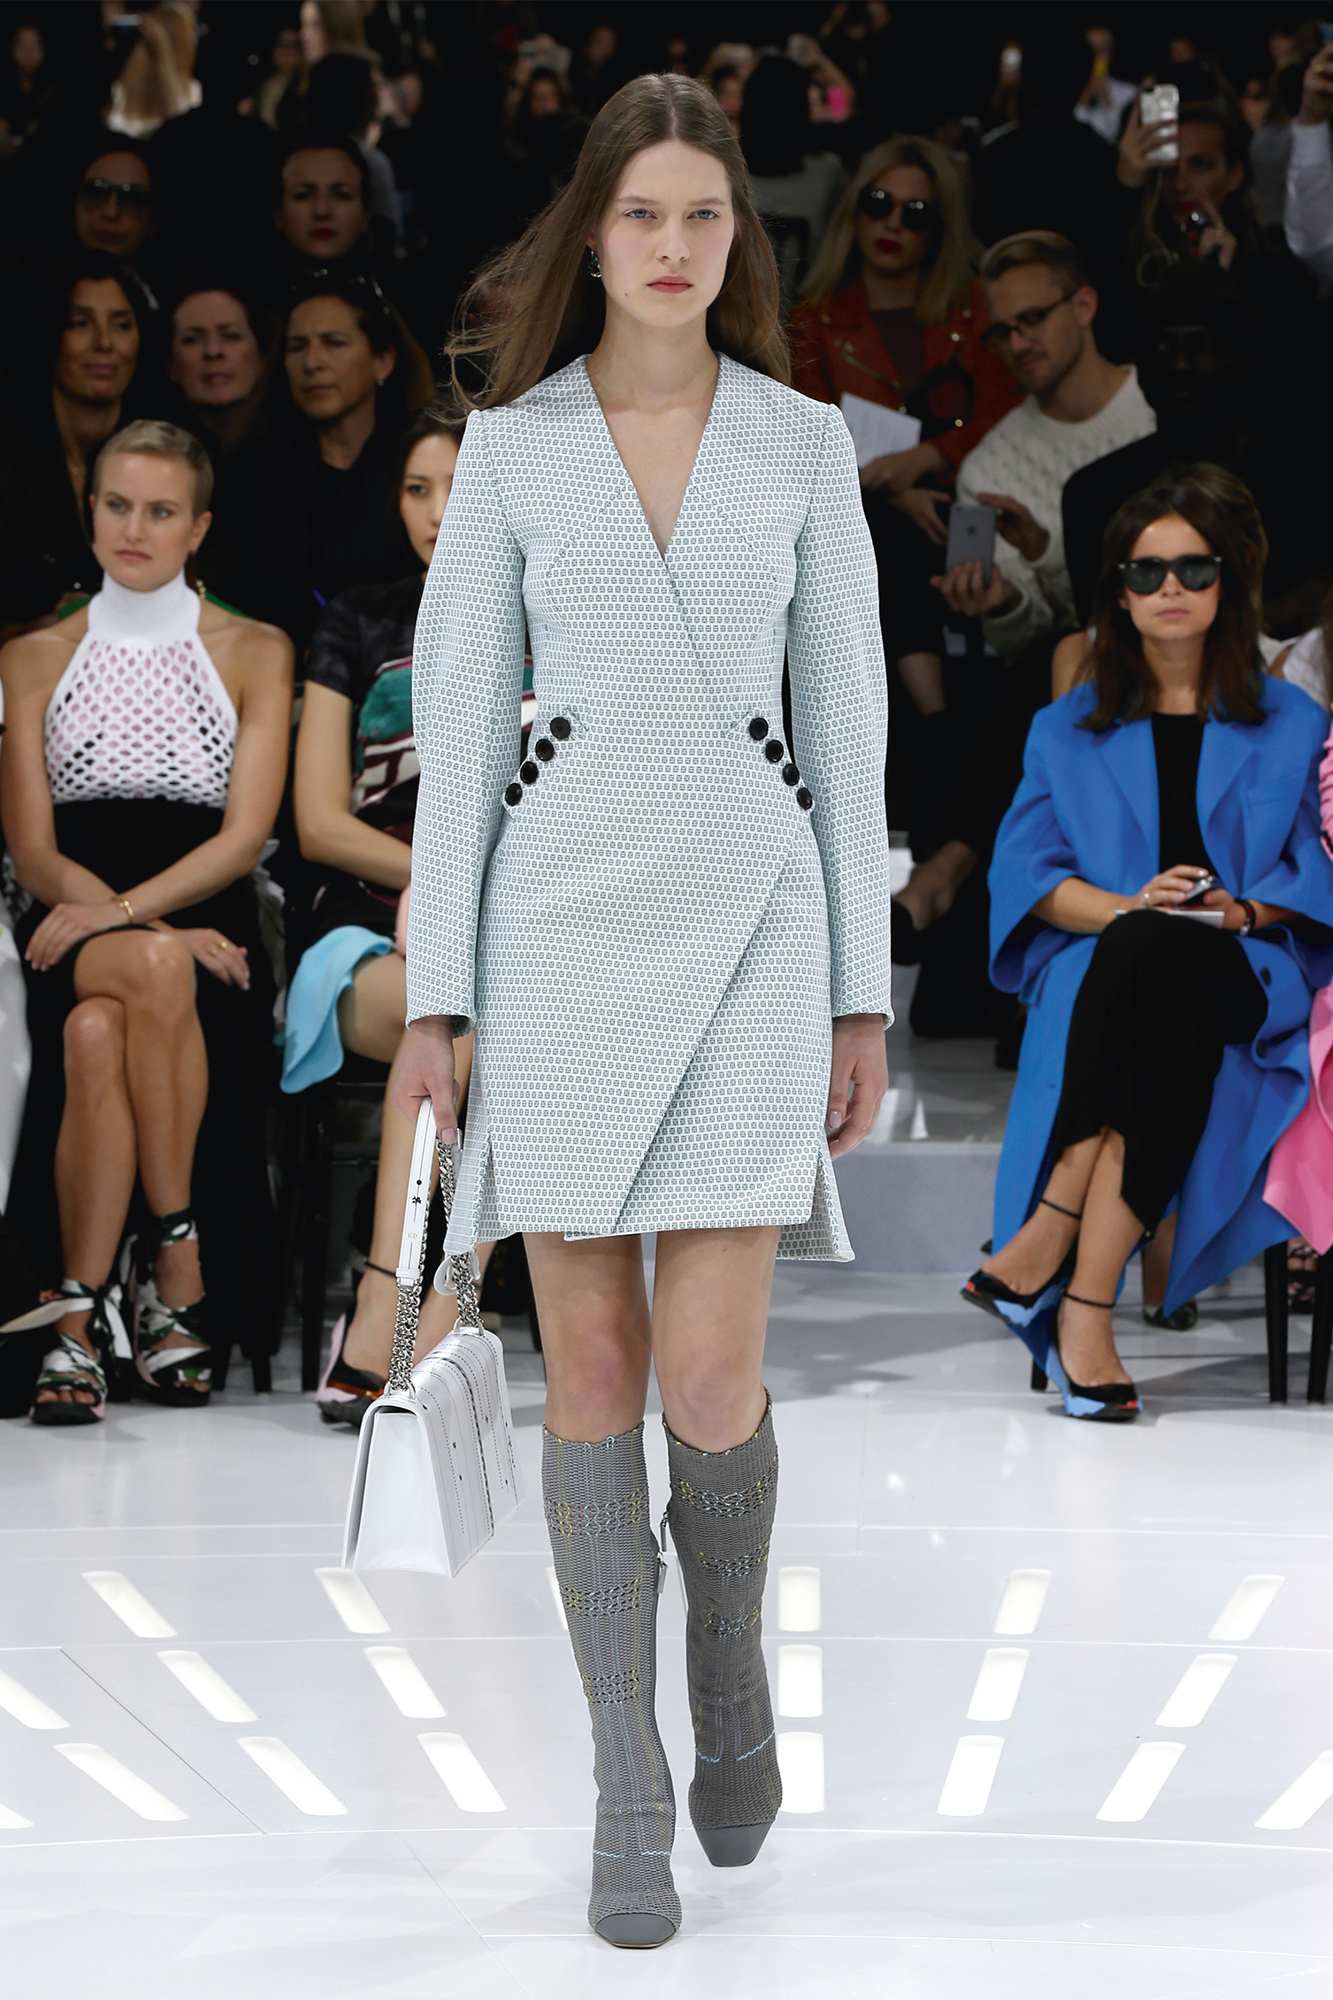 Christian Dior Haute Couture Spring-Summer Ready To Wear Dresses & Accessories Collection 2015-16 (25)